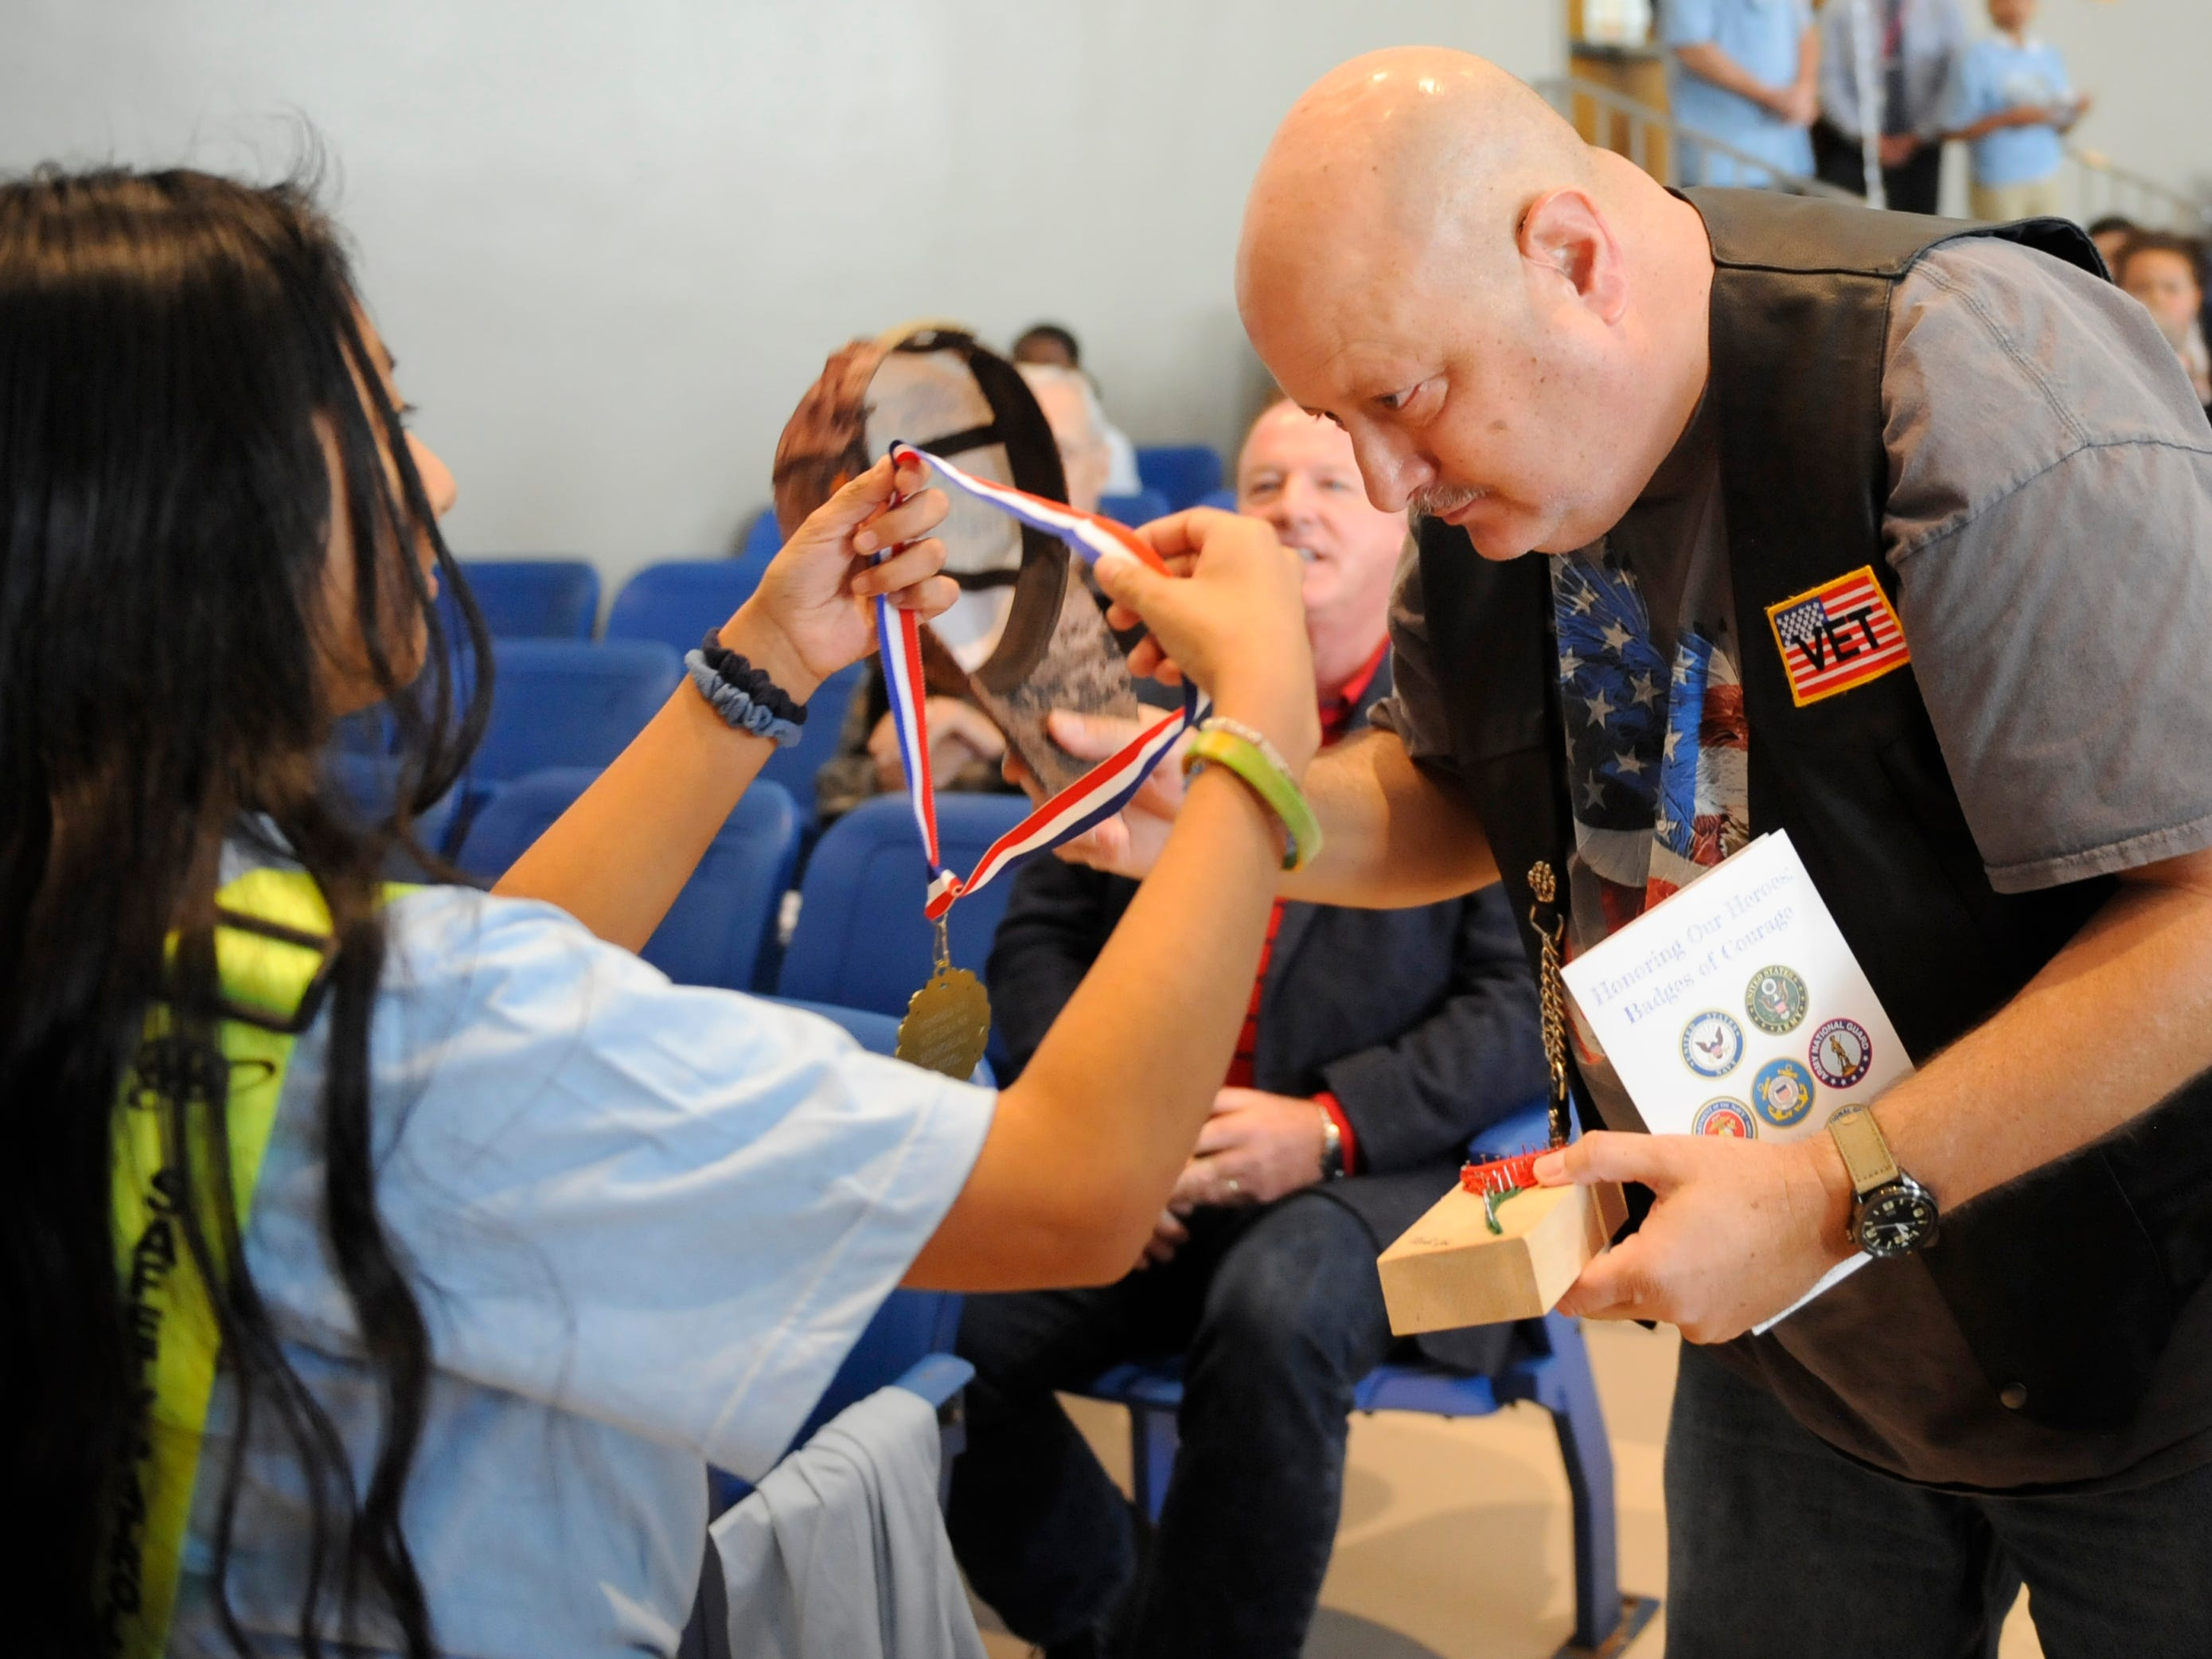 Veterans Memorial School students place medals on veterans who attended a special assembly honoring heroes on Wednesday, November 14, 2018.